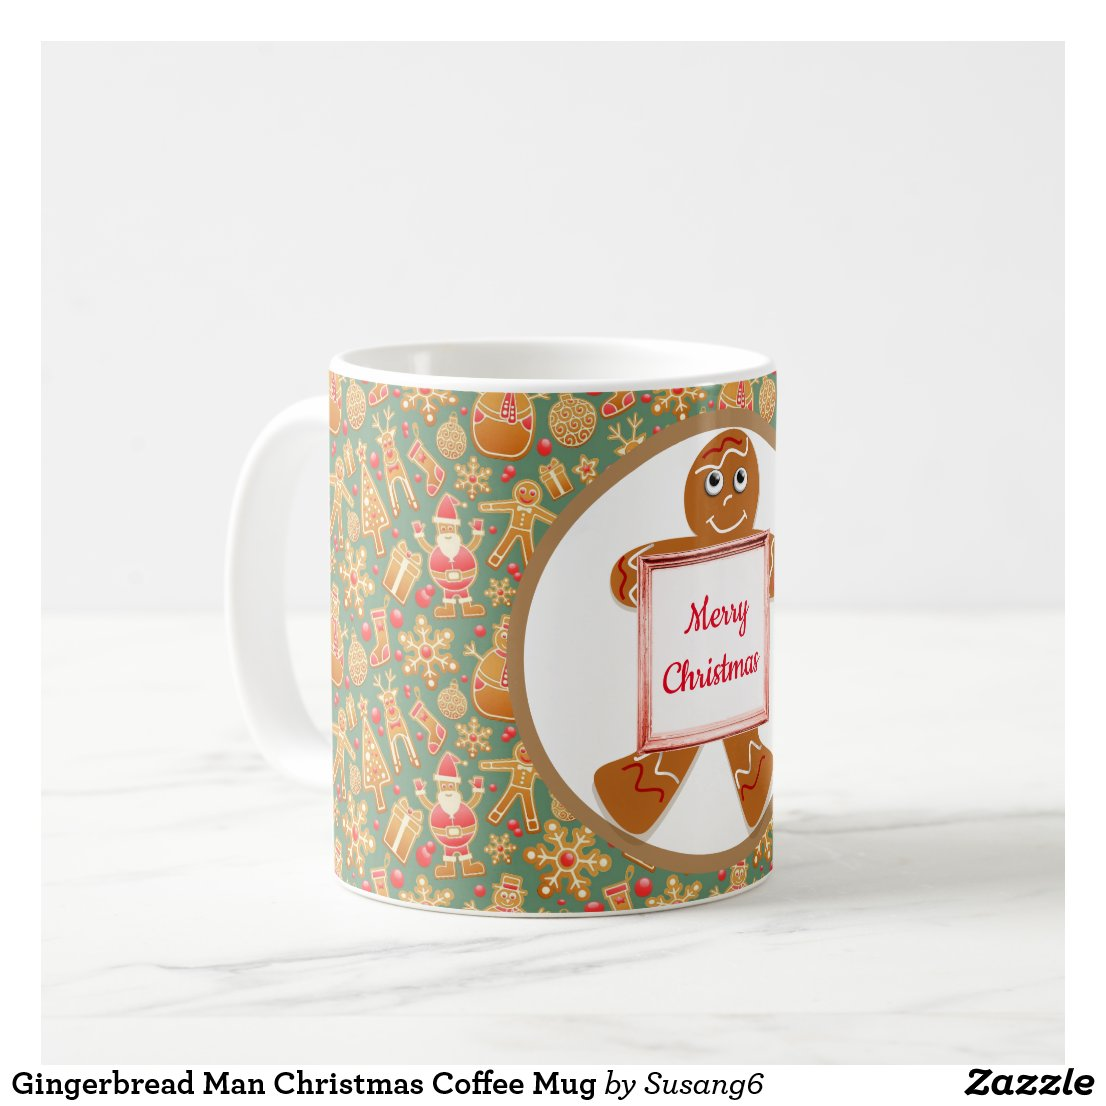 Gingerbread Man Christmas Coffee Mug